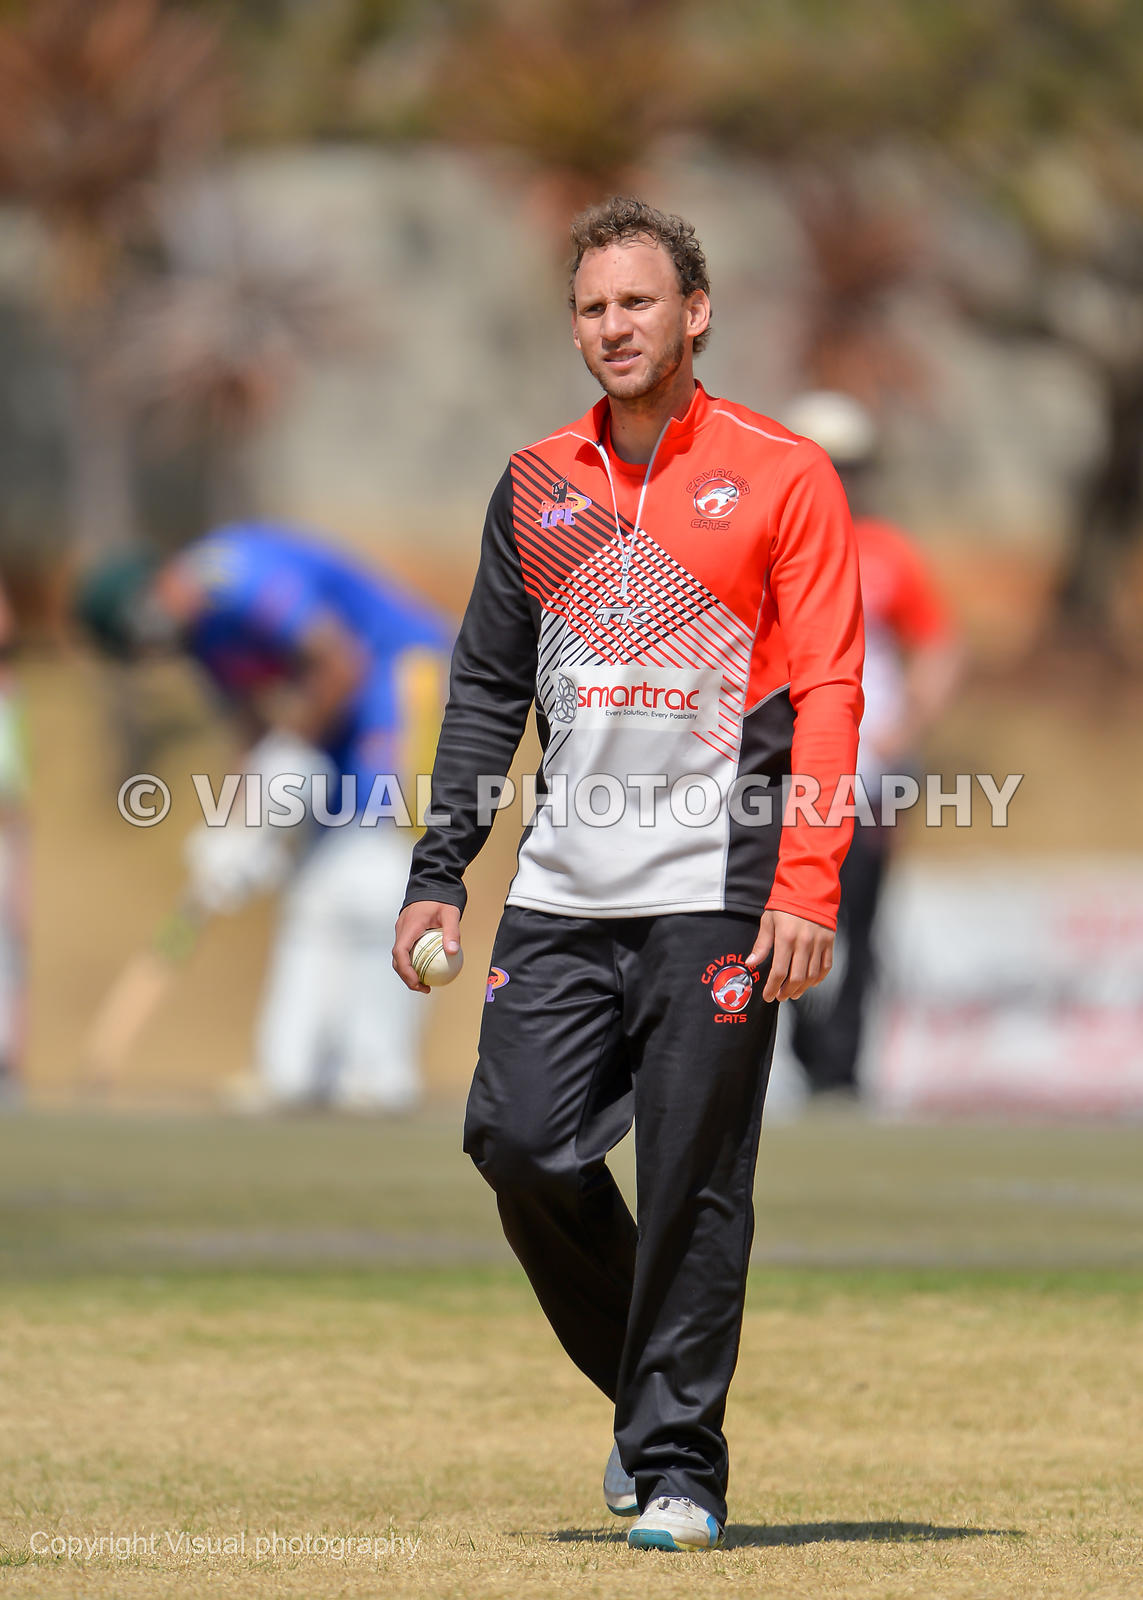 Cricket - 2018  day match (18-over match), Johannesburg - South Atrica - Bank  - Knifgts